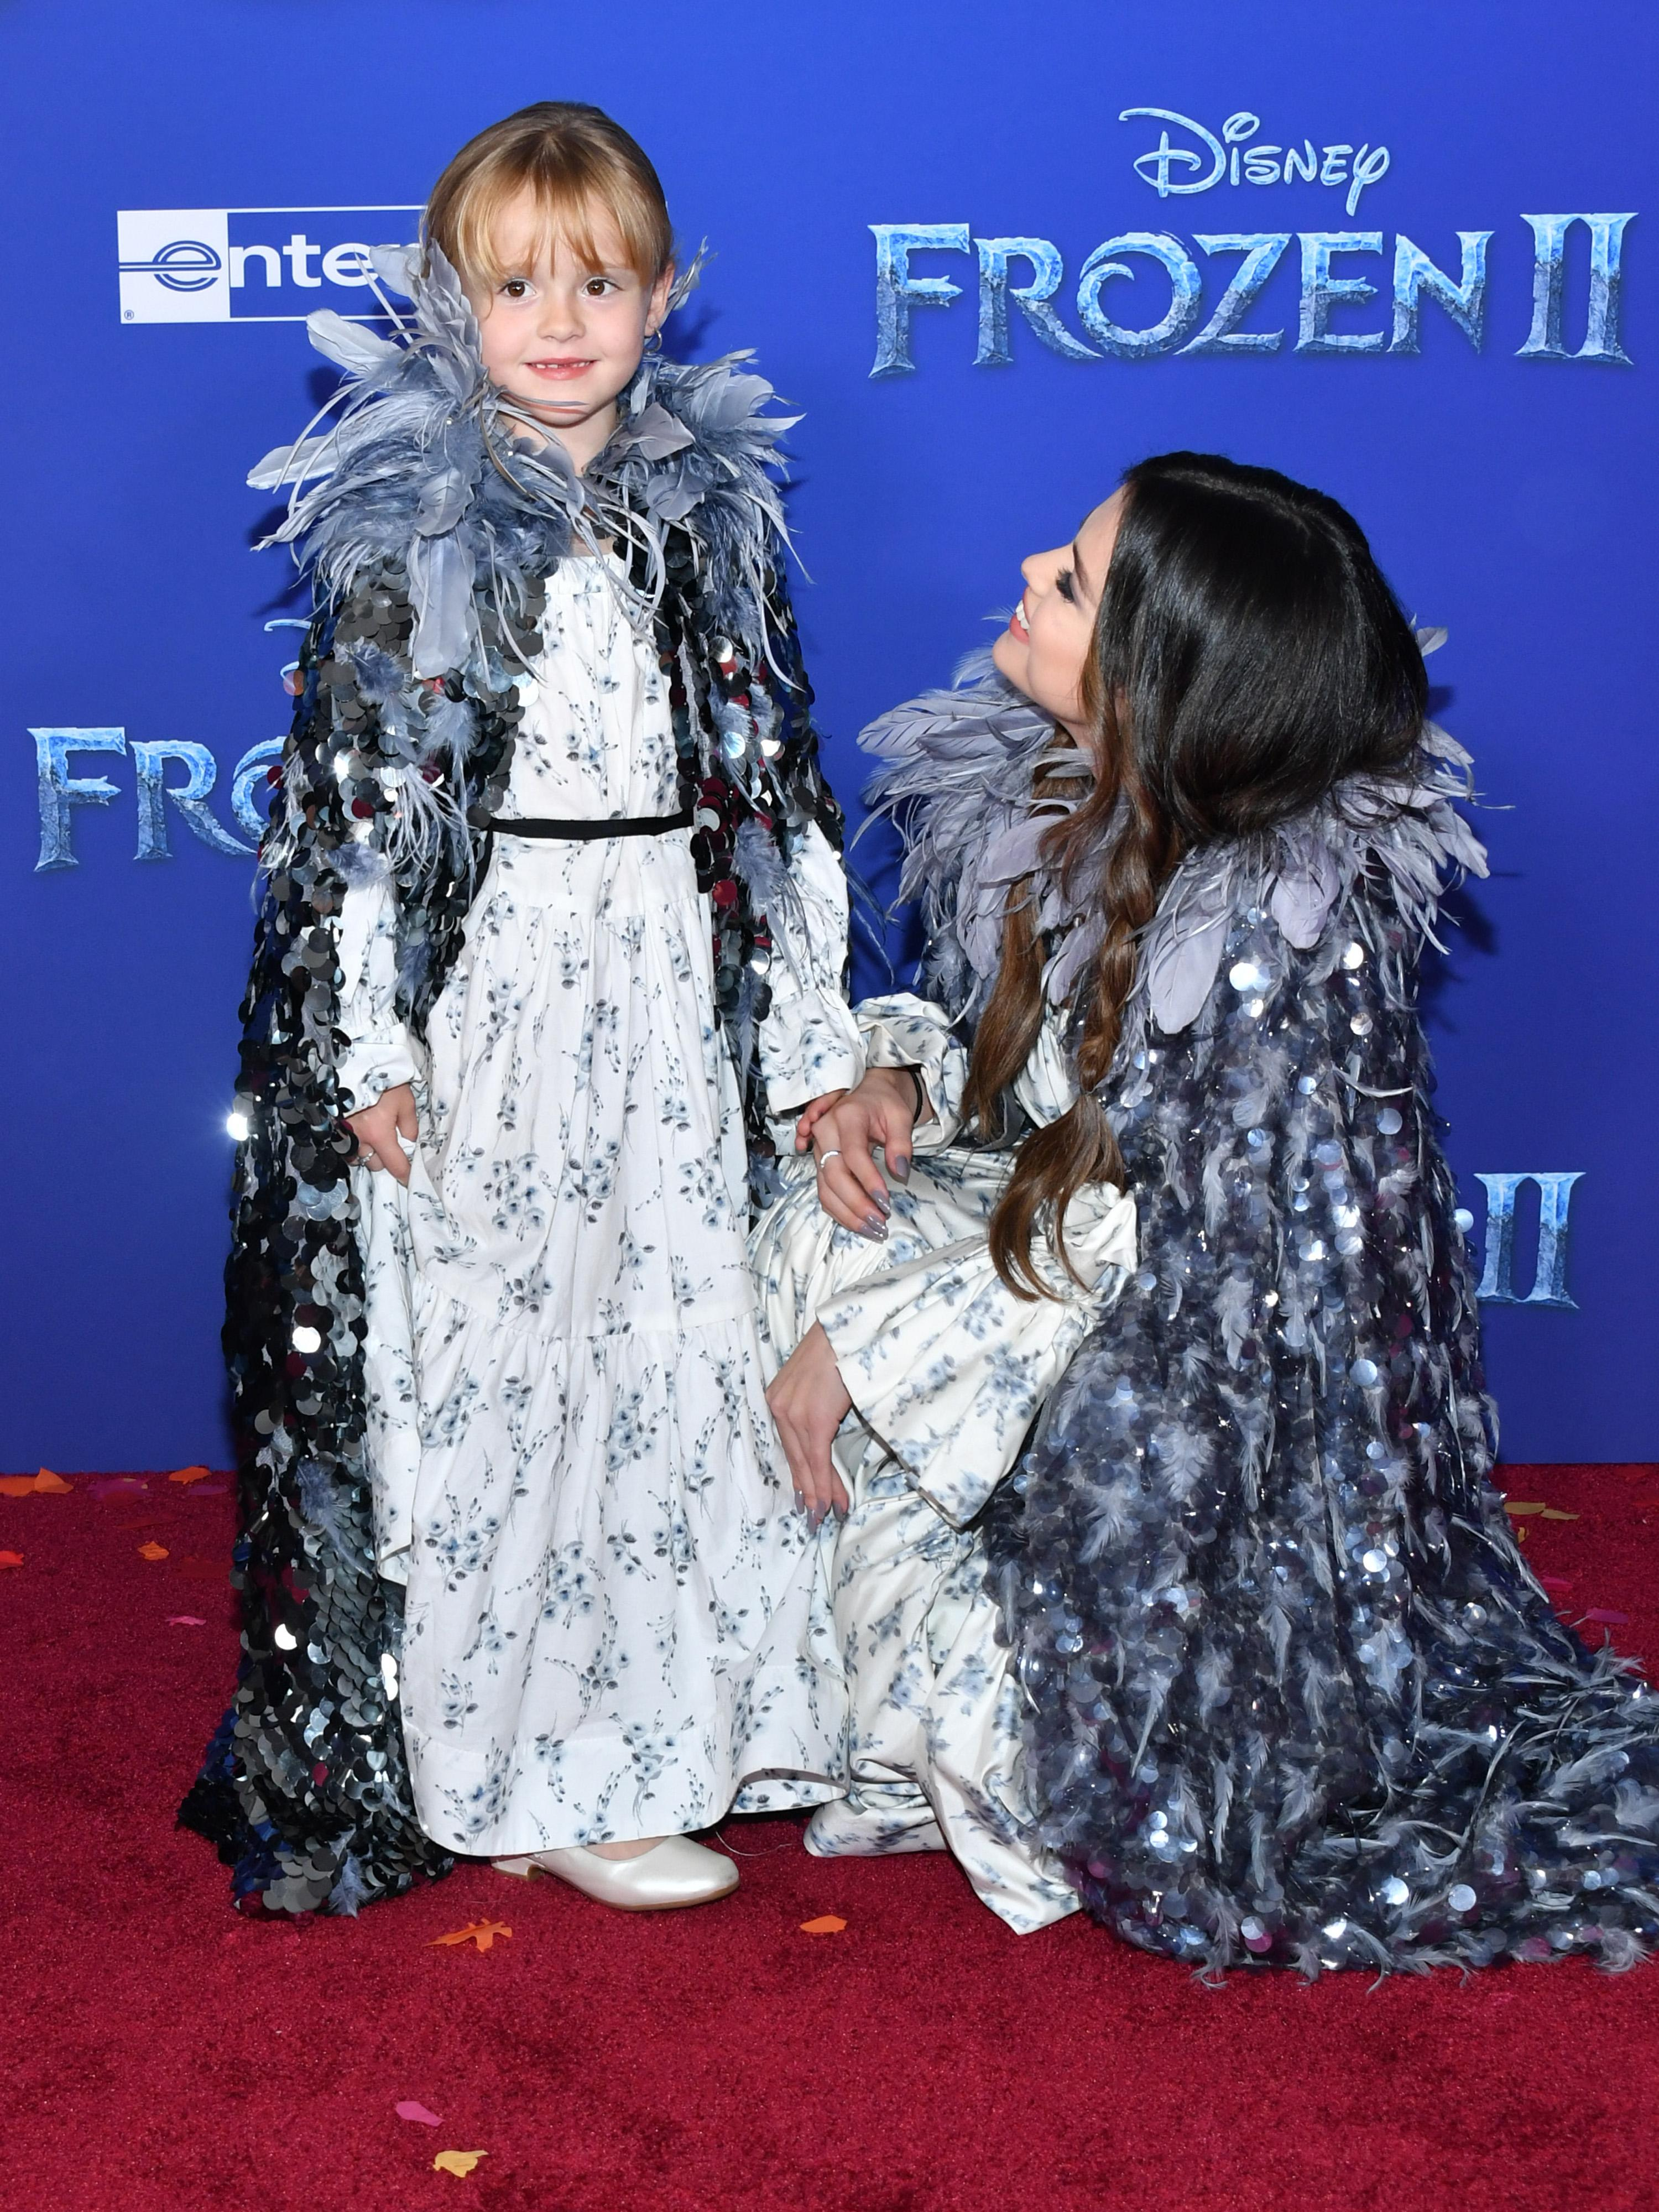 Gracie Teefey and Selena Gomez attend the premiere of 'Frozen 2'. [Photo: Getty]